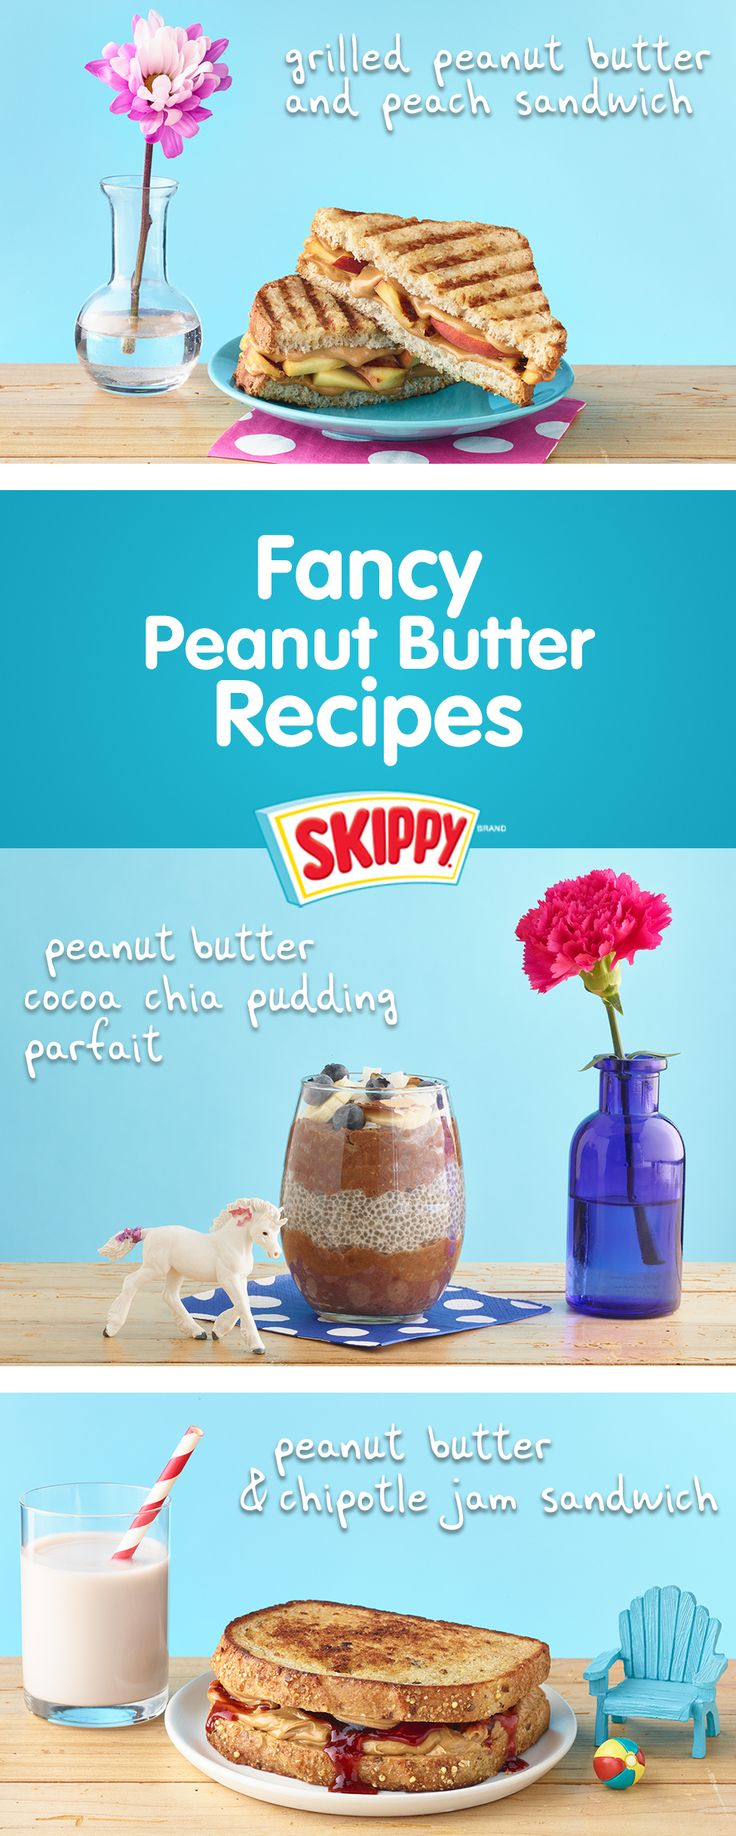 FancEE ShmancEE recipes are easEE with SKIPPY® Peanut Butter! Easy Peanut Butter Recipes   Recipe Ideas   Peanut Butter   SKIPPY® Peanut Butter